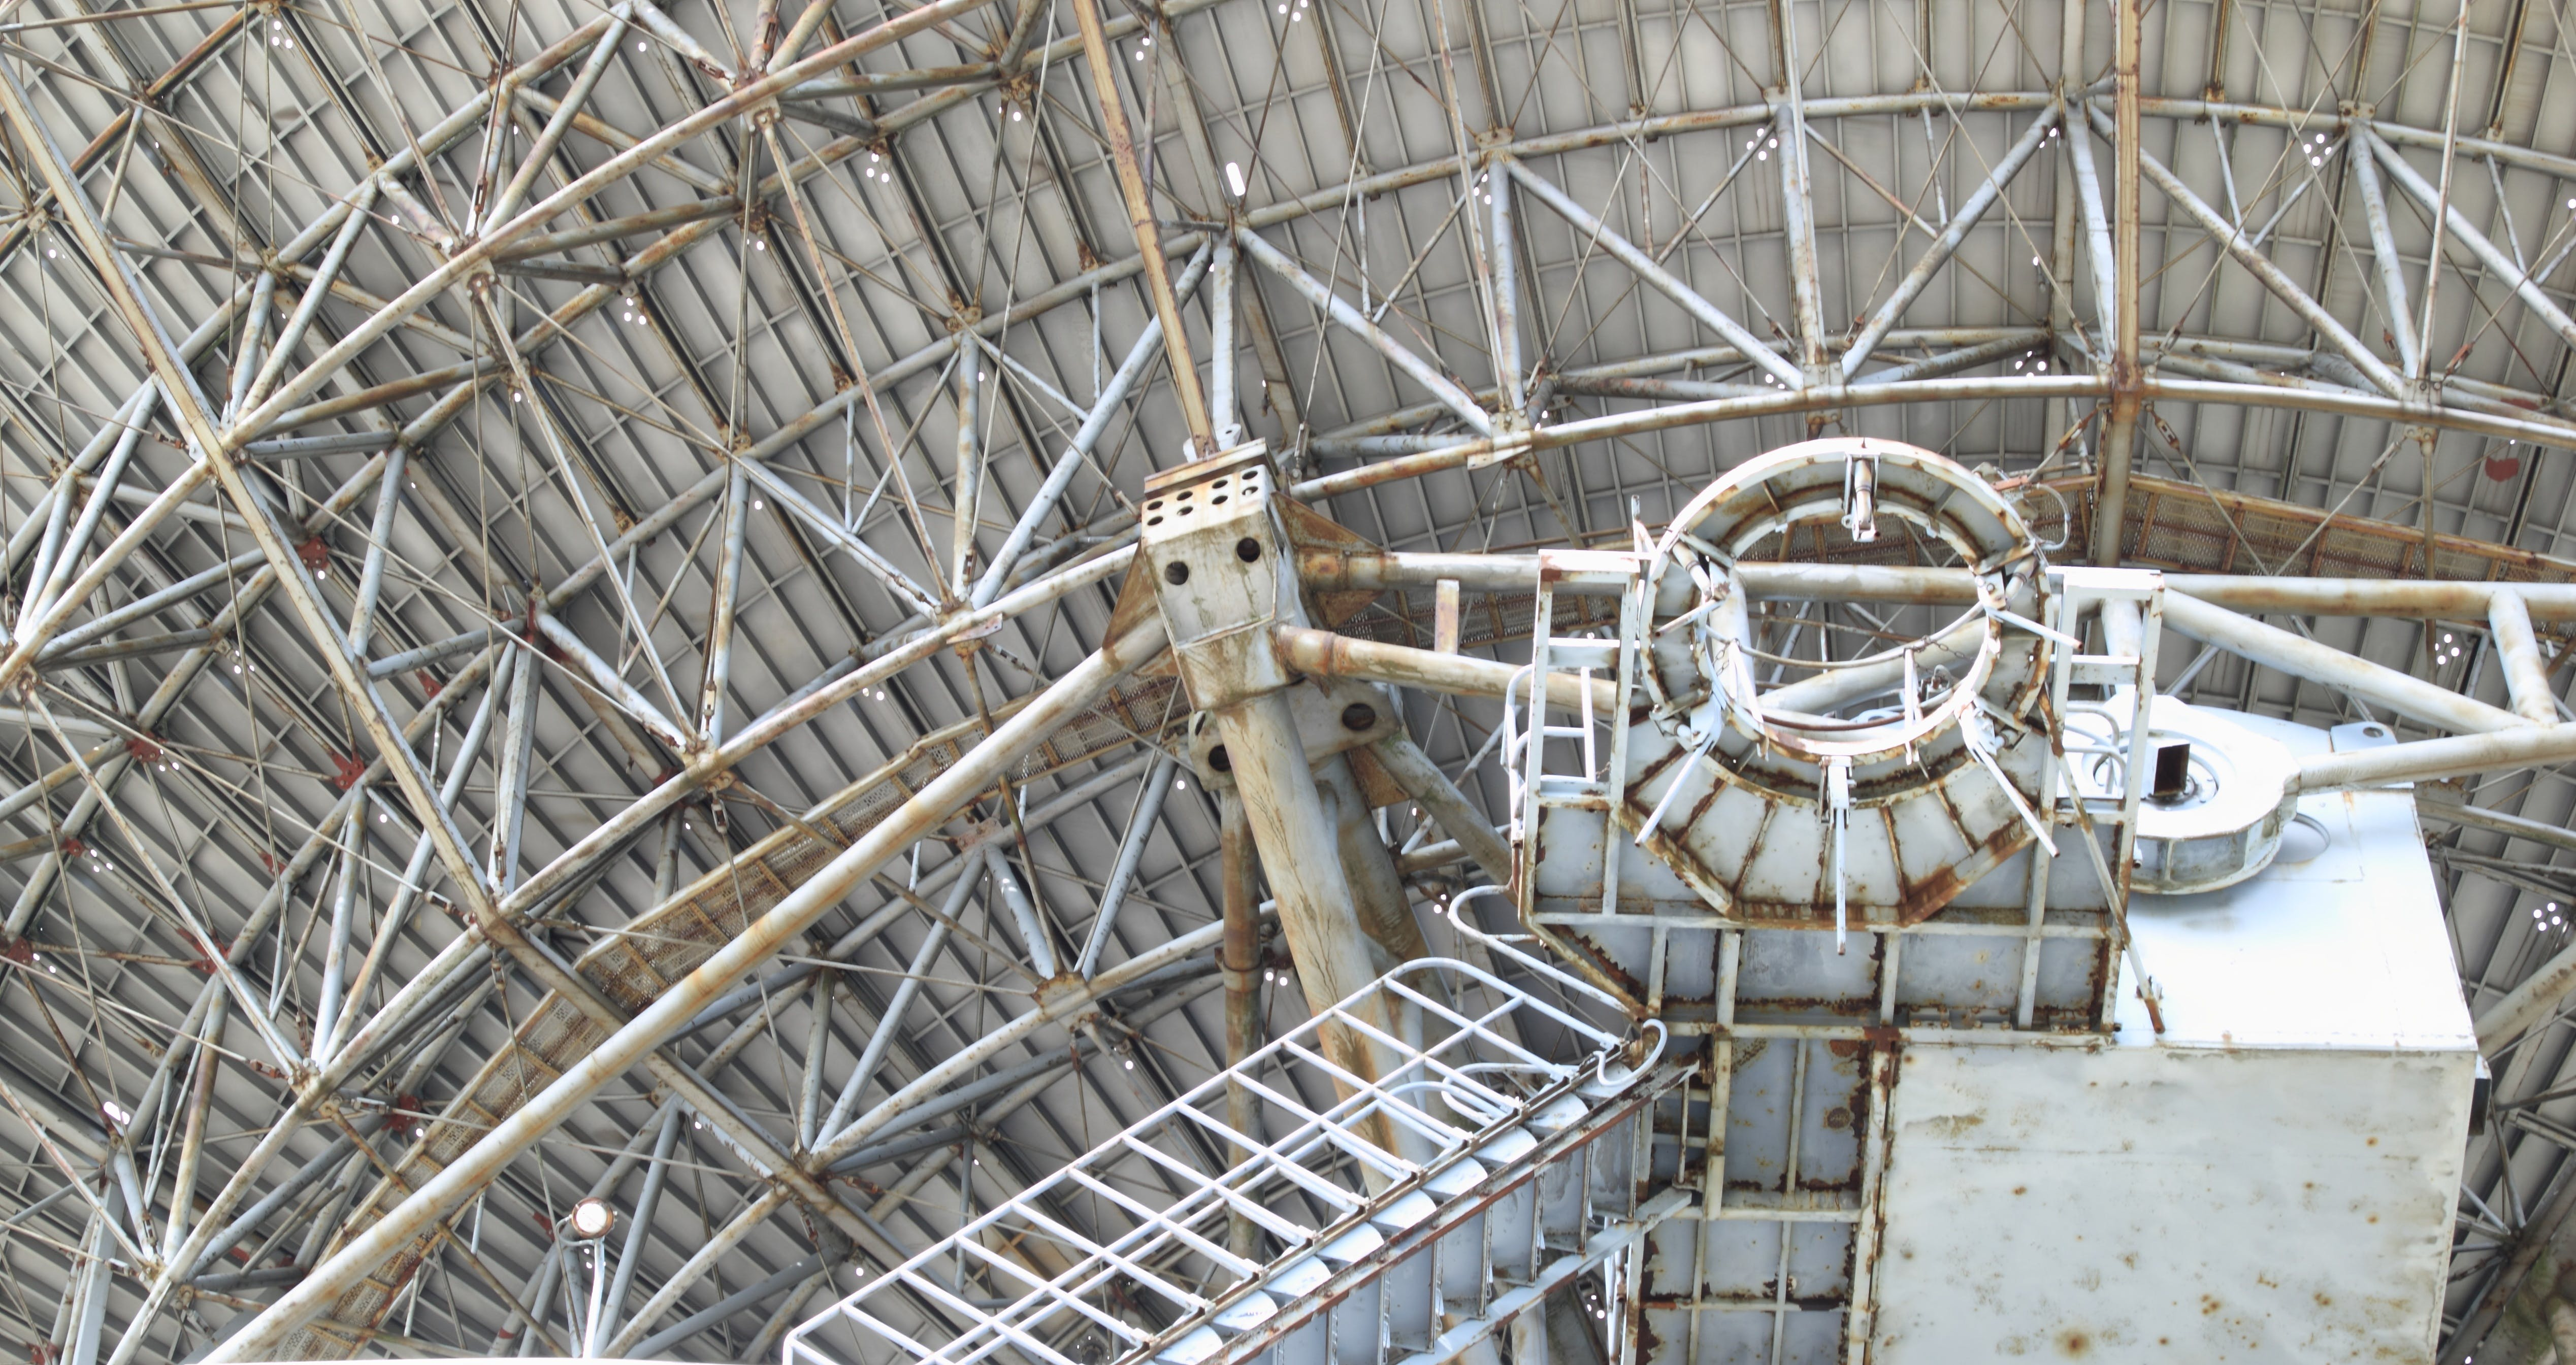 Close-up View of Metallic Structure